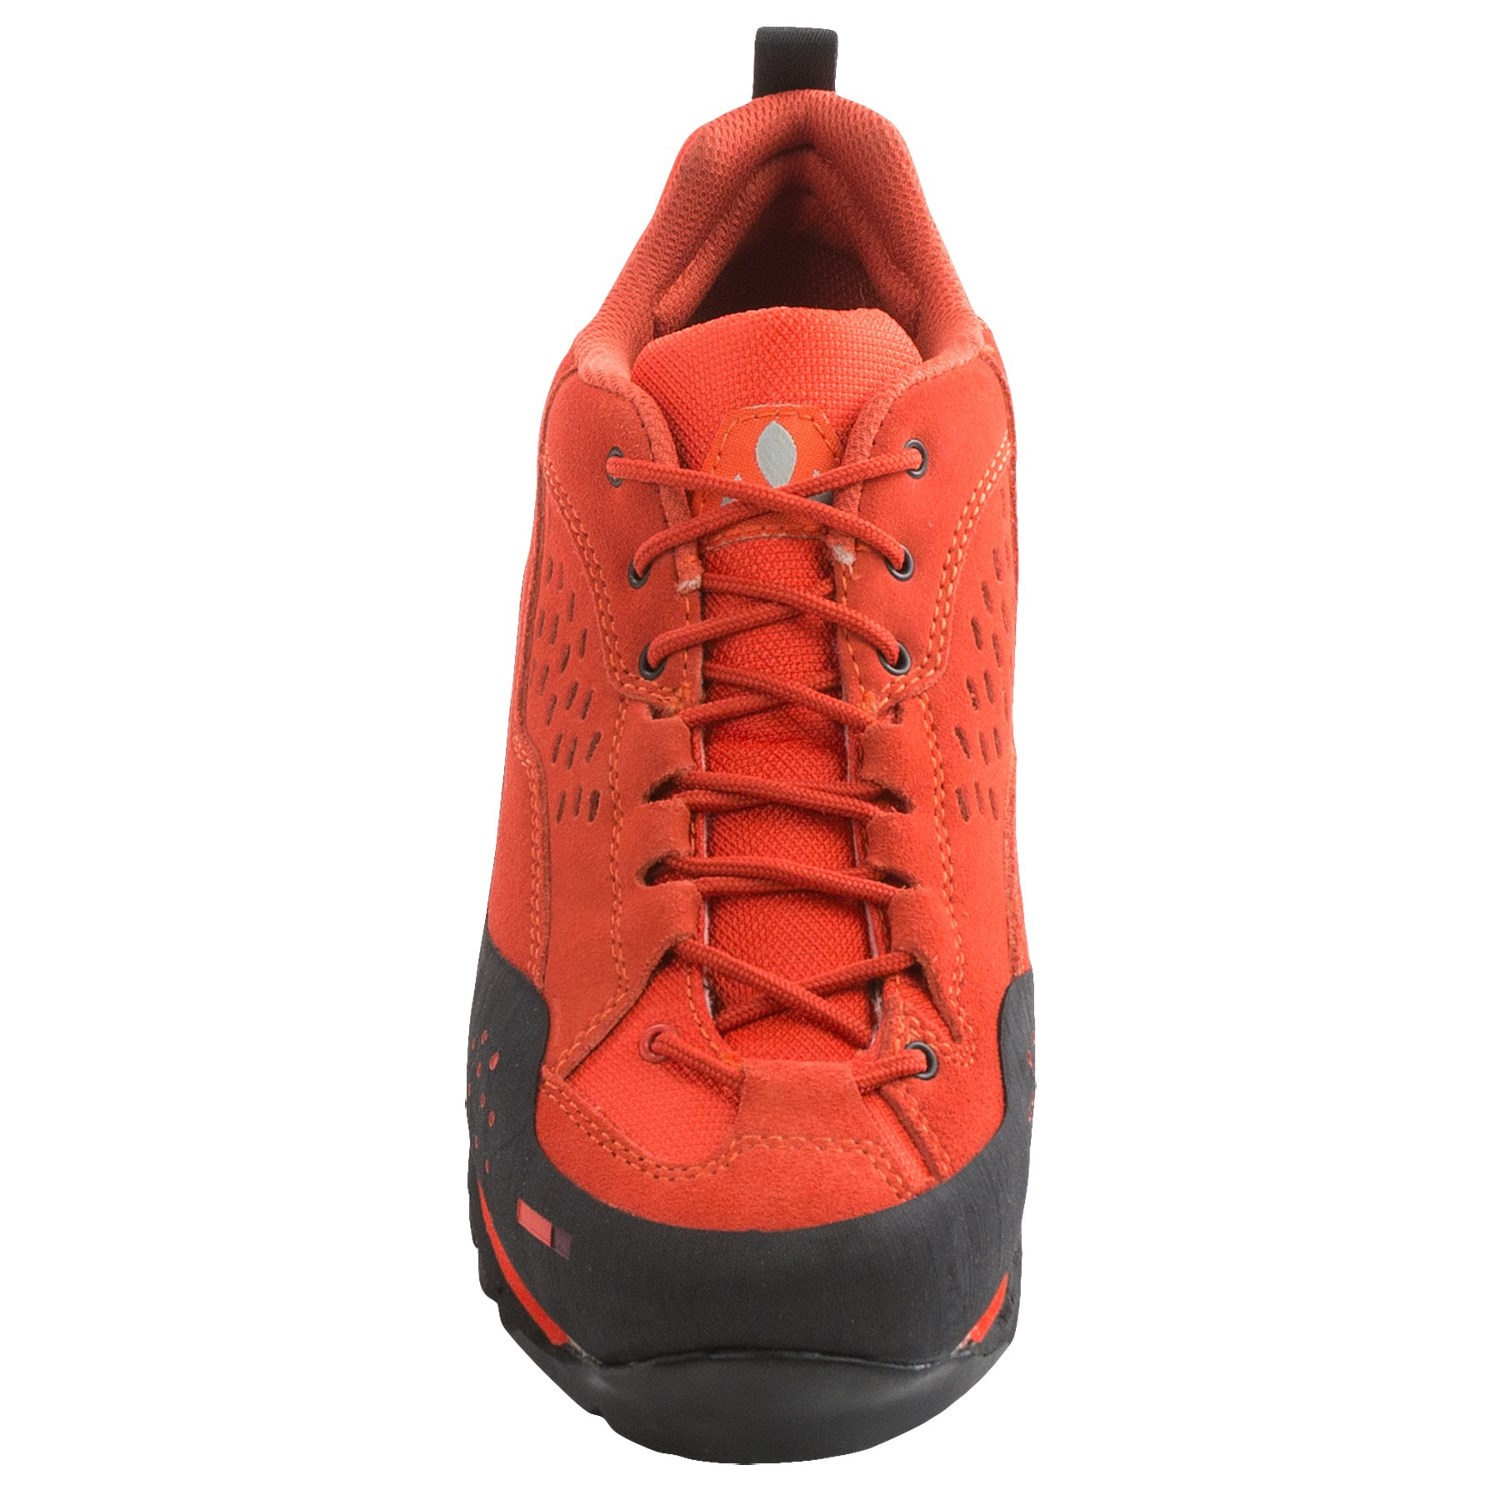 Vaude Shoes Sizing